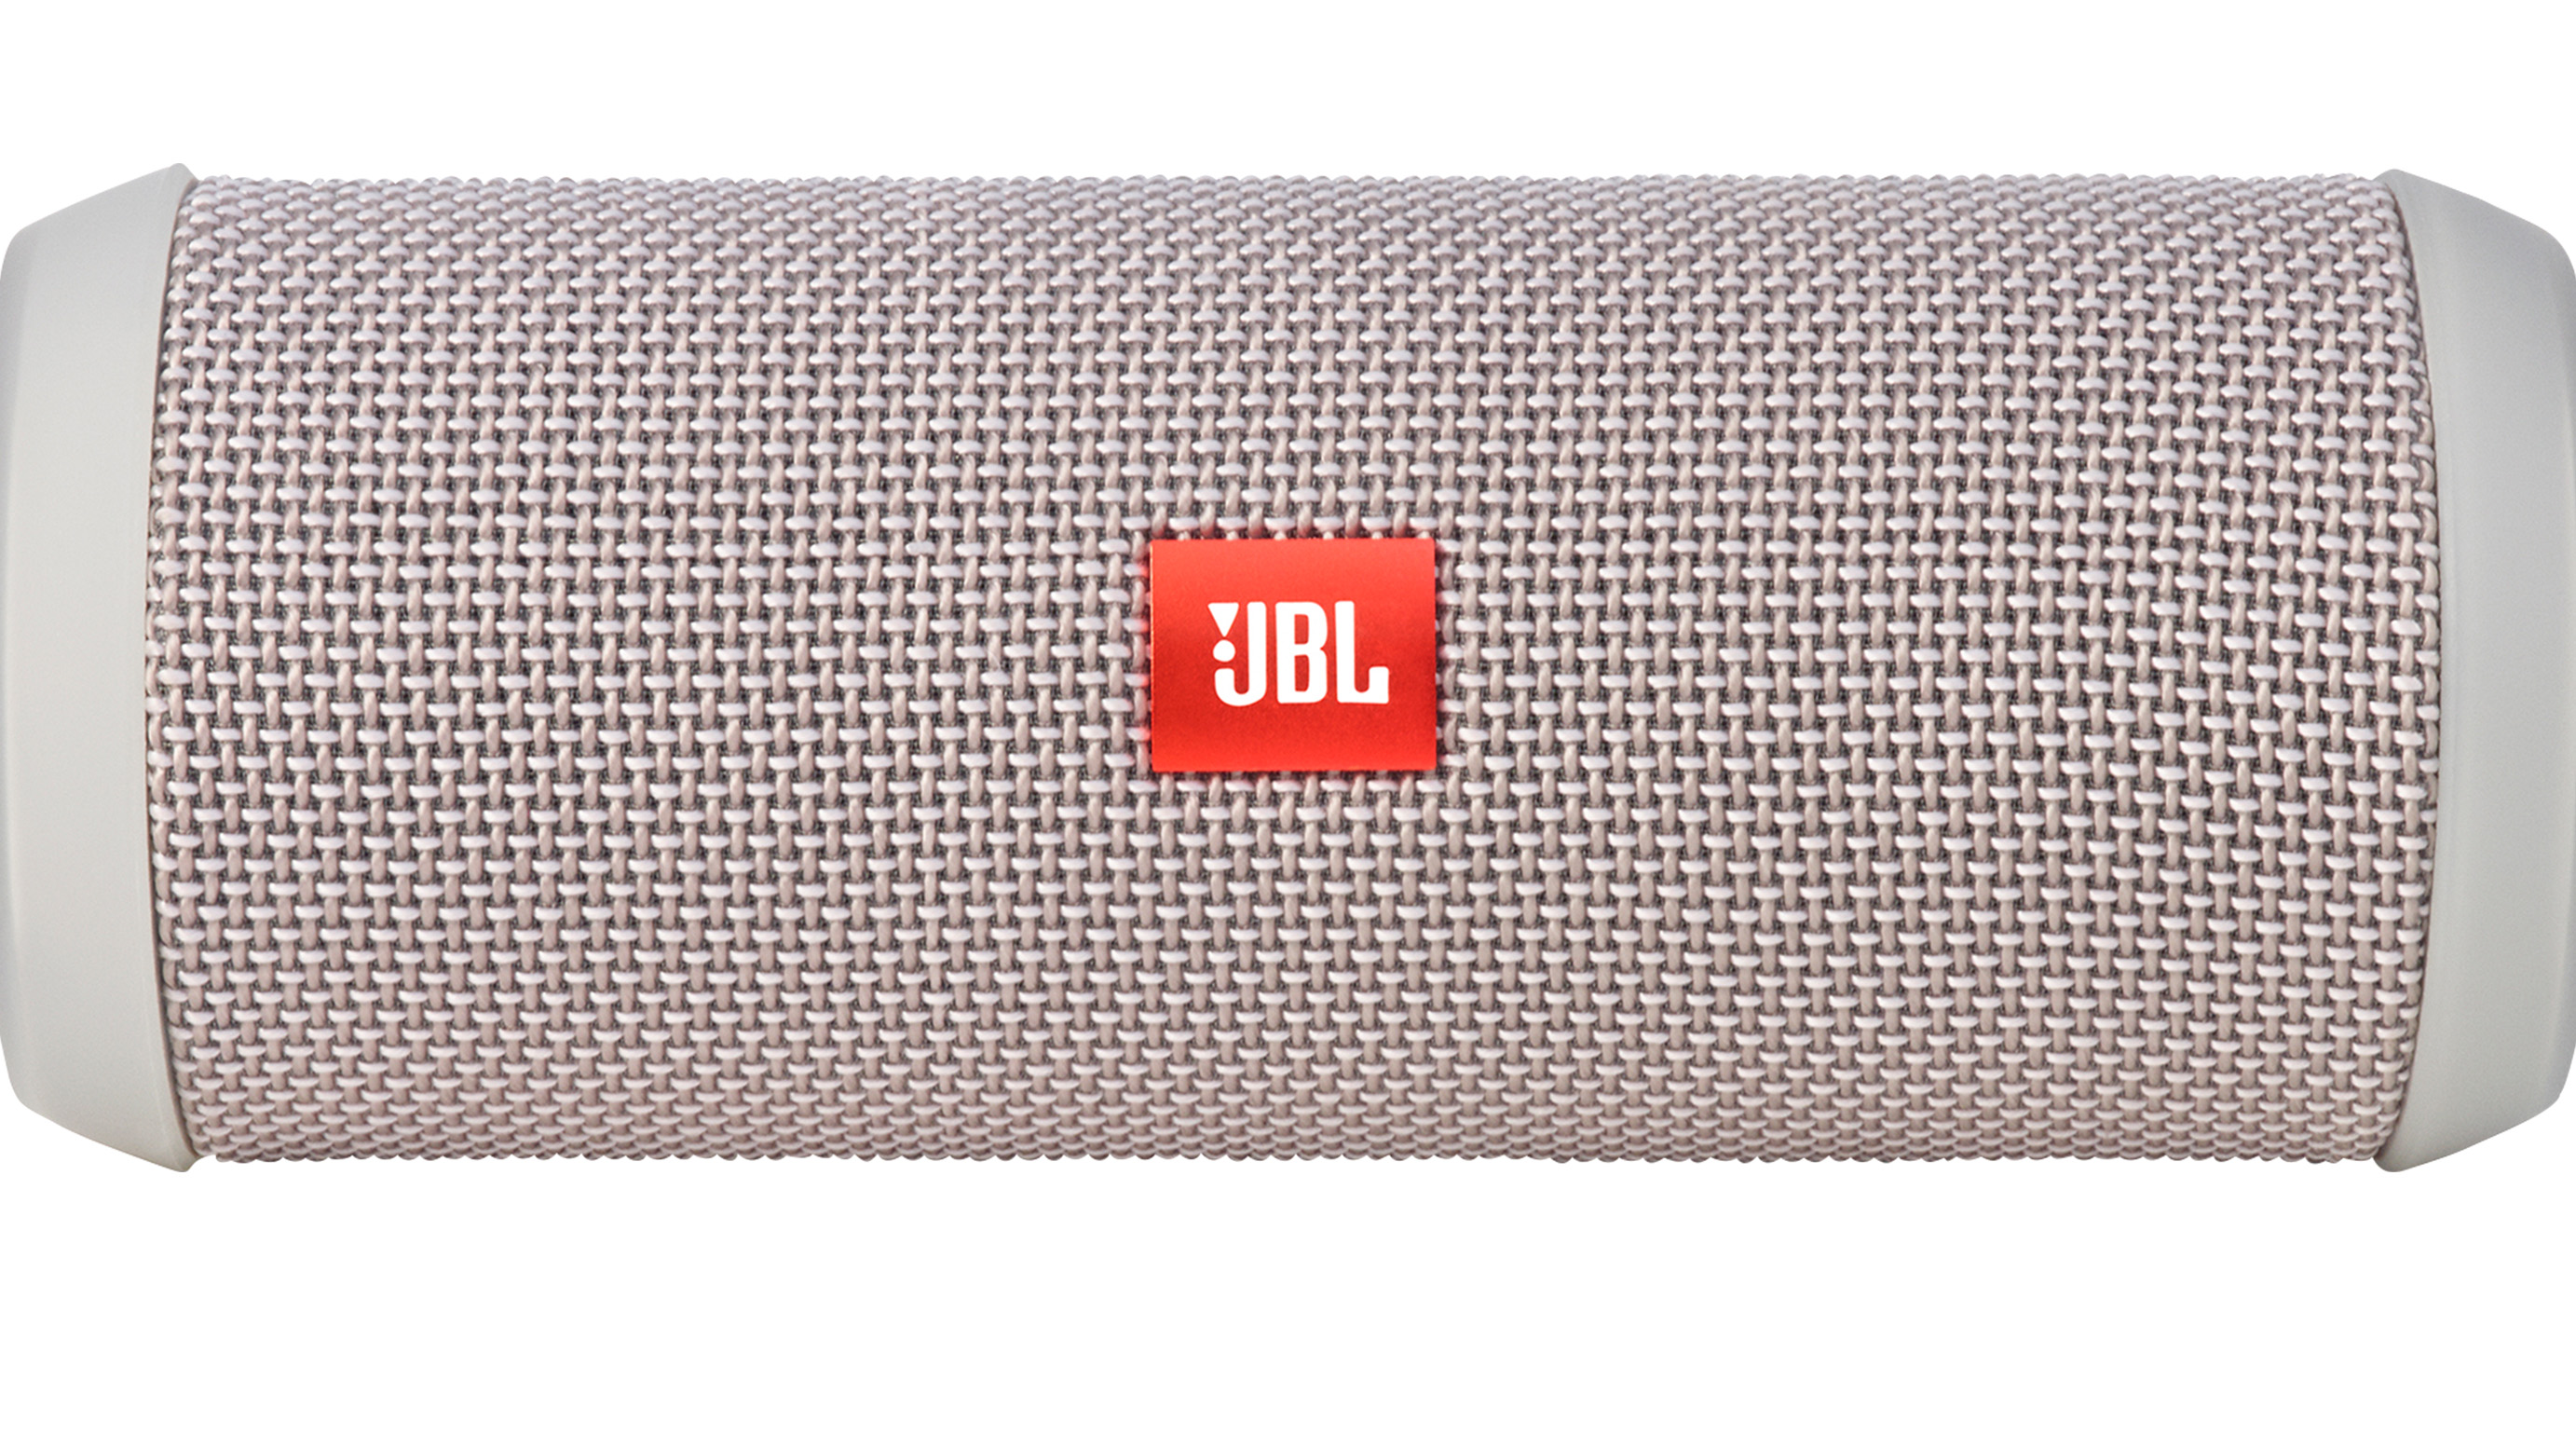 JBL Flip 3 Portable Bluetooth Speaker (Gray)